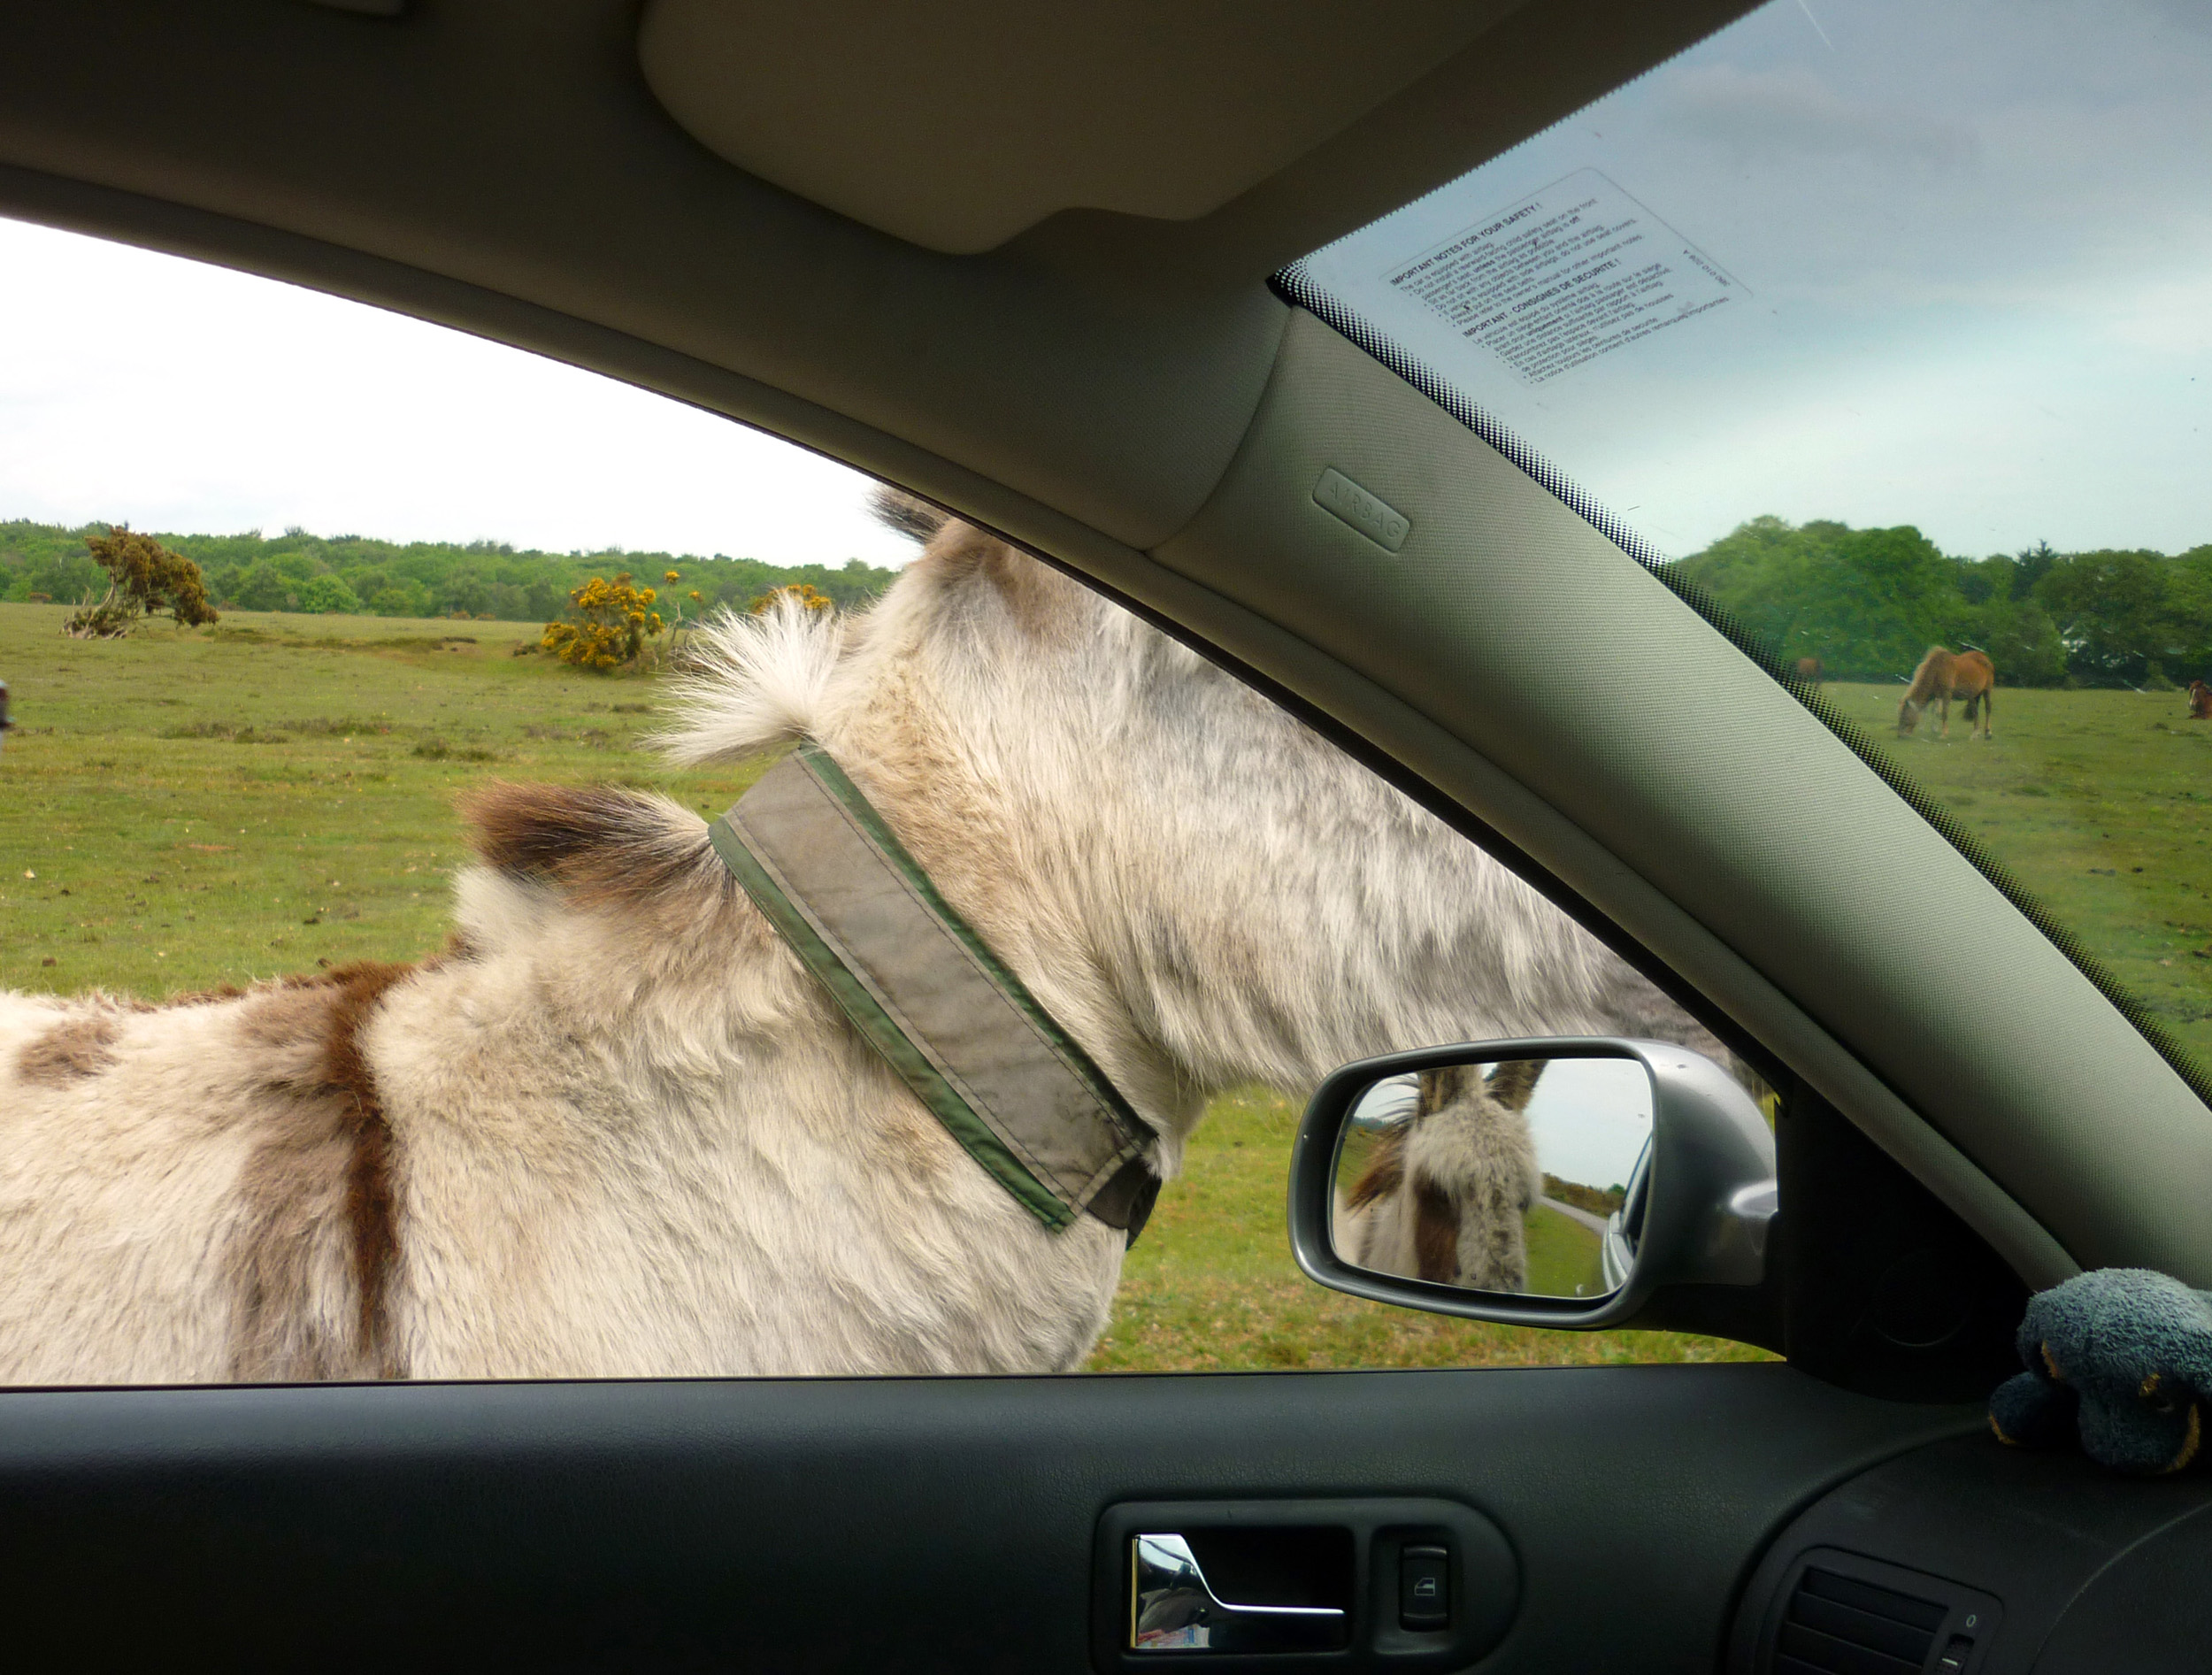 horse viewed through a car window and in the mirror, new forest, dorset